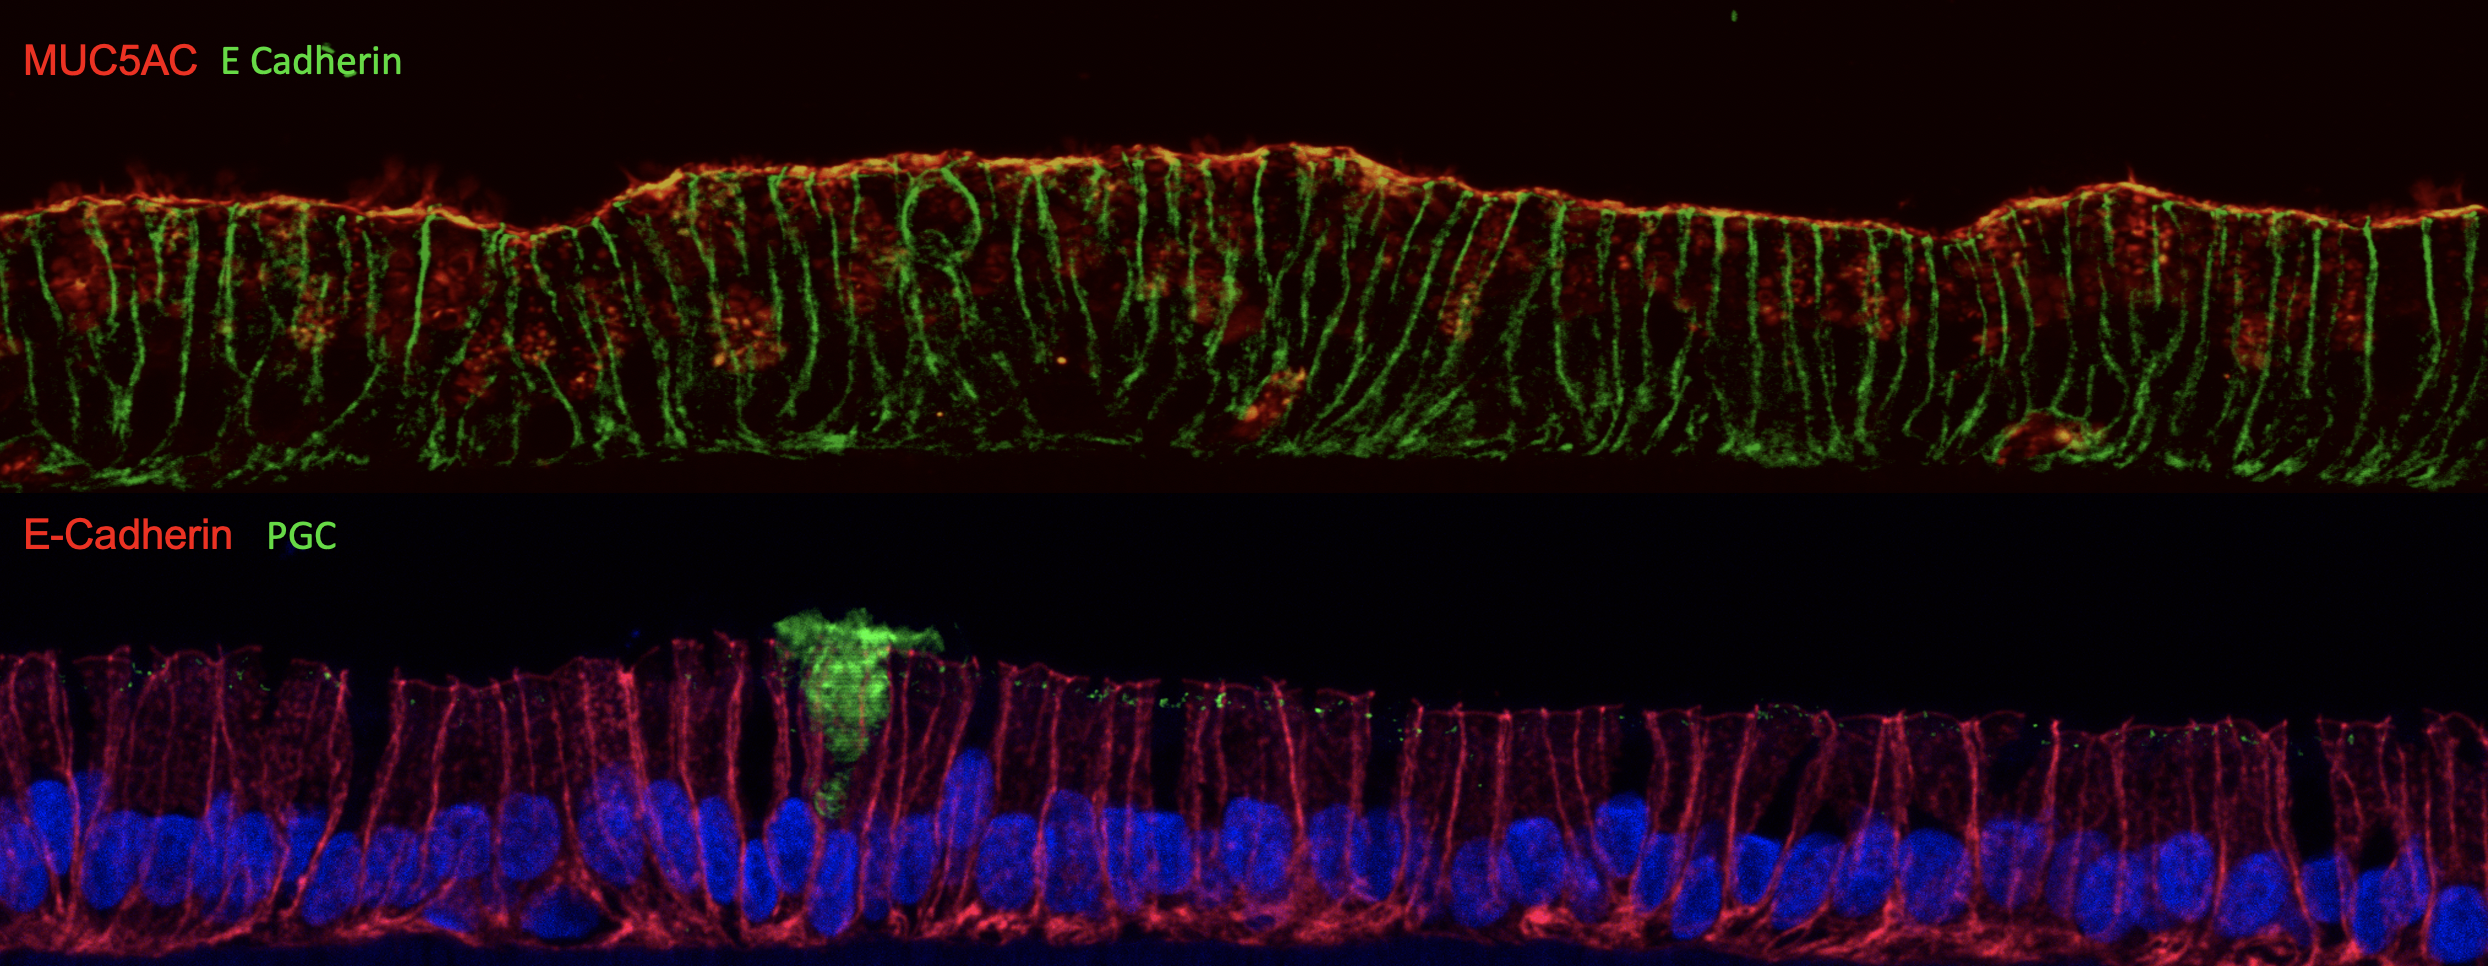 Top: example of a mucosoid with cells (the plasma membrane is labelled in green) producing protective mucins (MUC5AC) labelled in red (the yellow is where the two labels overlap creating the mucus layer). Bottom: example of a mucosoid with cells (the plasma membrane is labelled in red and the nuclei in blue) showing one cells producing Pepsinogen (in green) the precursor of pepsin, the main digestive enzyme.